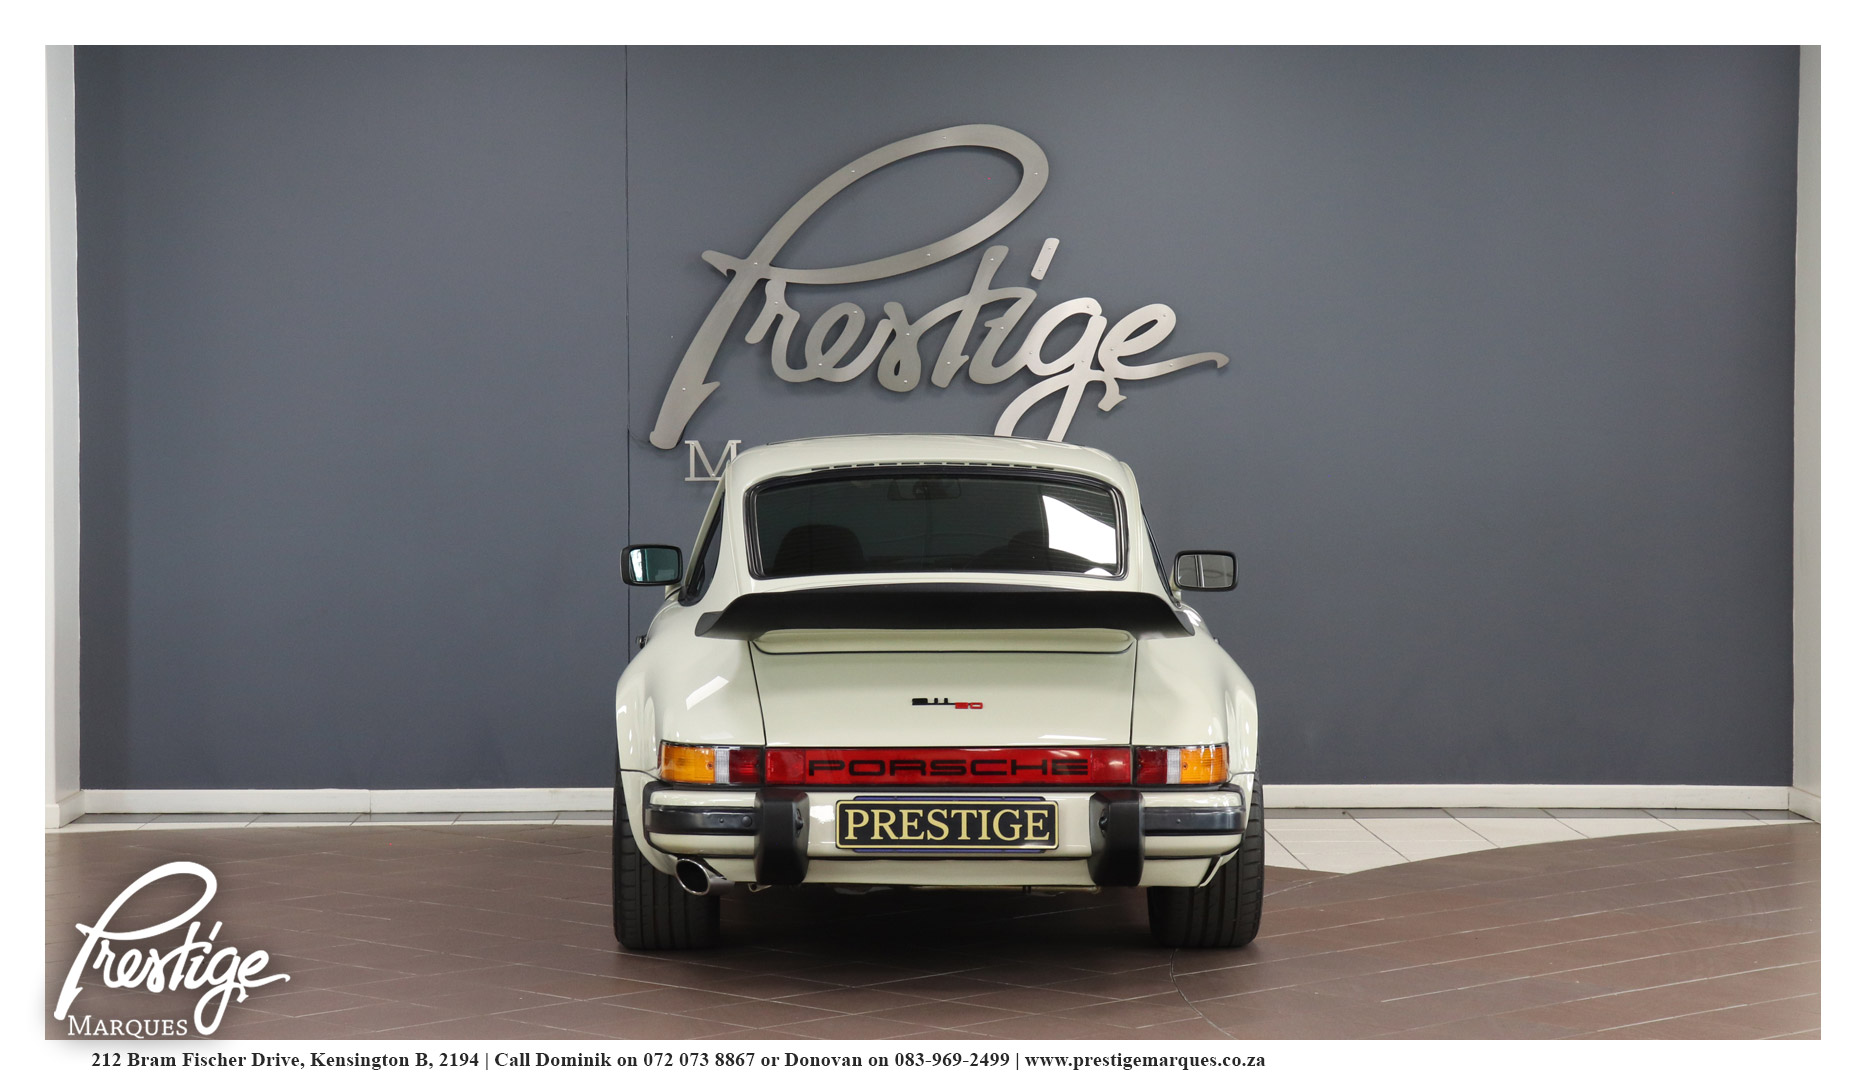 1982-Porsche-911-Carrera-20-Year-Anniversary-Tribute-Build-Prestige-Marques-Randburg-Sandton-4